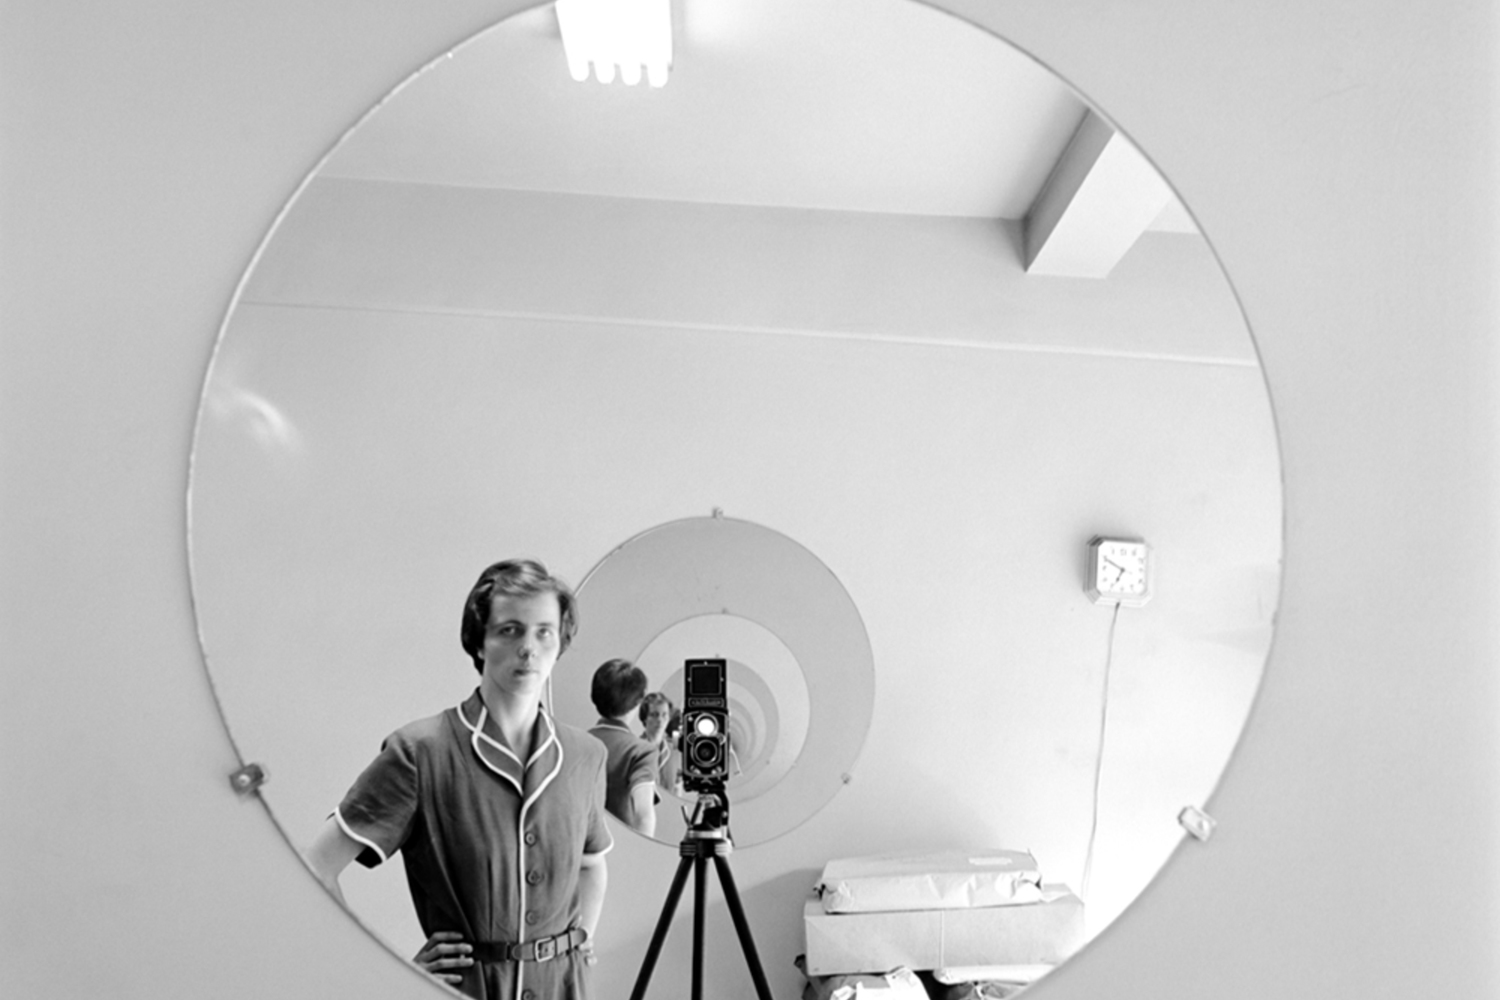 Finding Vivian Maier. 2013. USA. Directed by John Maloof, Charlie Siskel. Courtesy of IFC Films